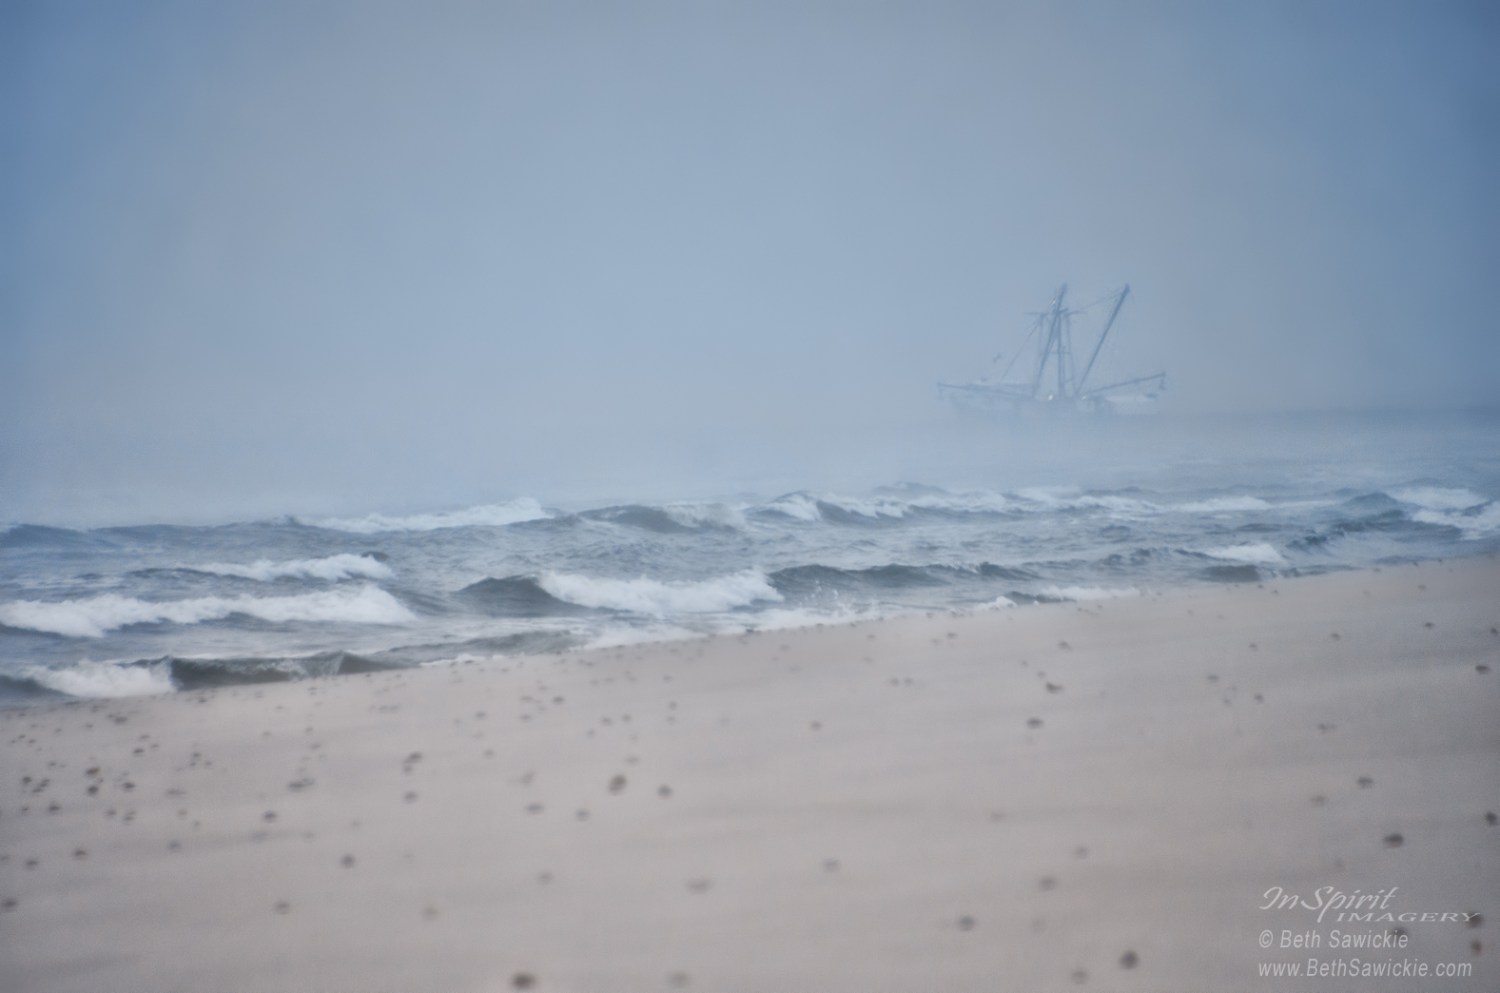 "Image by Beth Sawickie. http://www.BethSawickie.com ""Out to the Foggy Sea - Barnegat Inlet"""